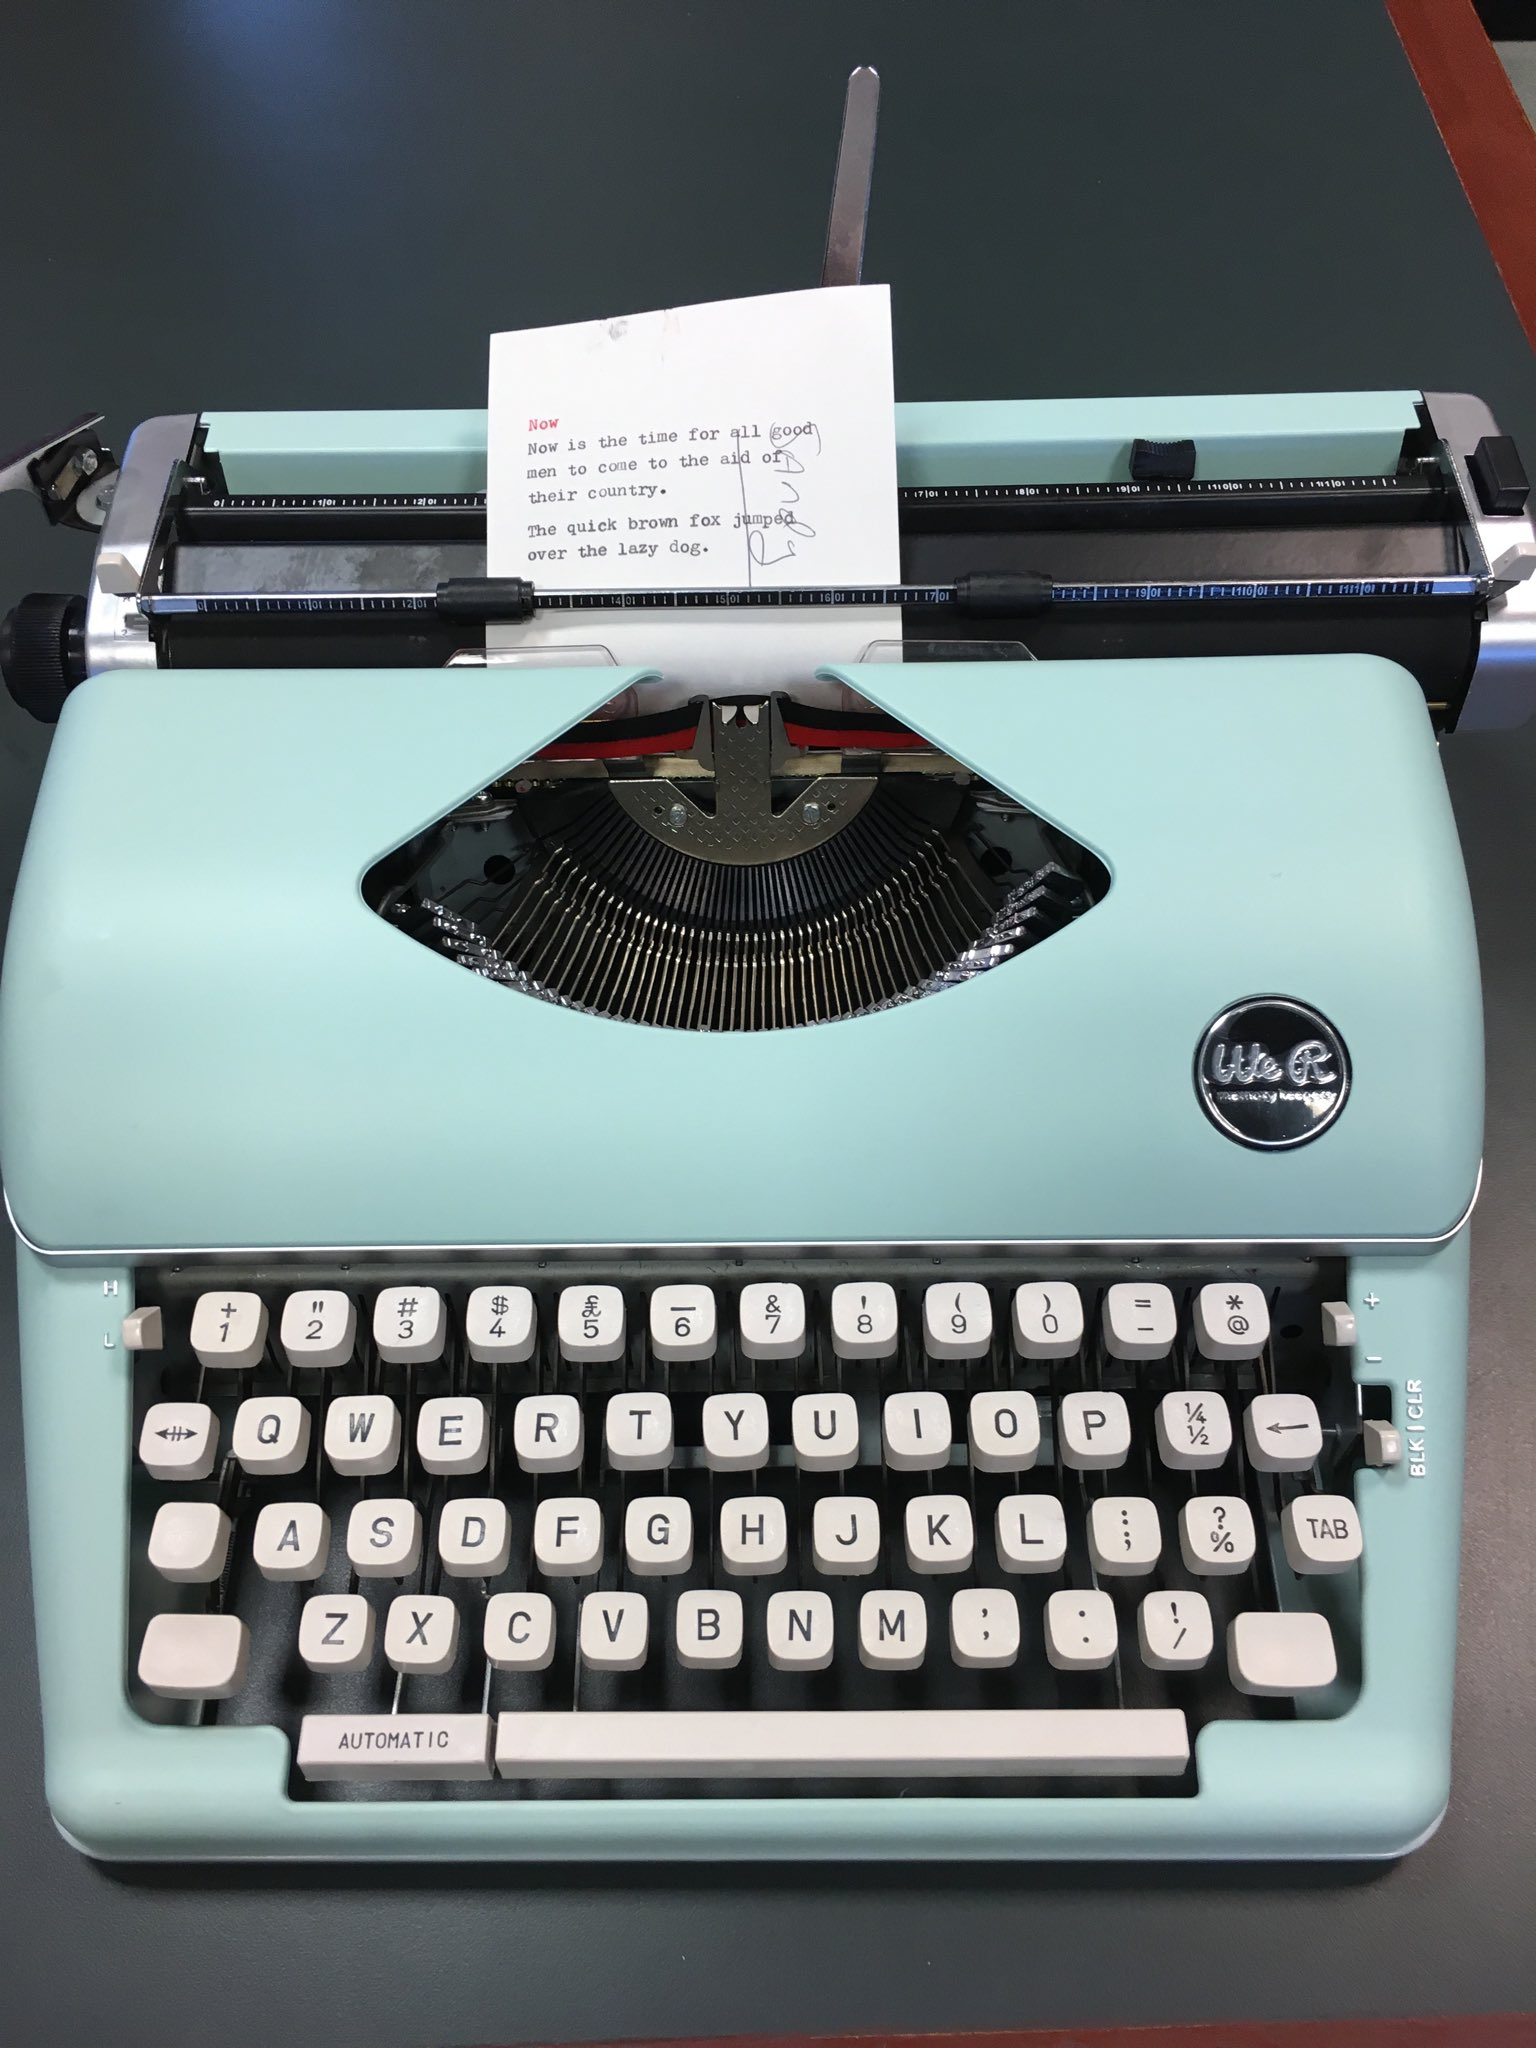 "Roy Peter Clark on Twitter ""My t to myself for Christmas not a re tread but a brand new typewriter purchased at TJ MAXX for $149 forty bucks less"